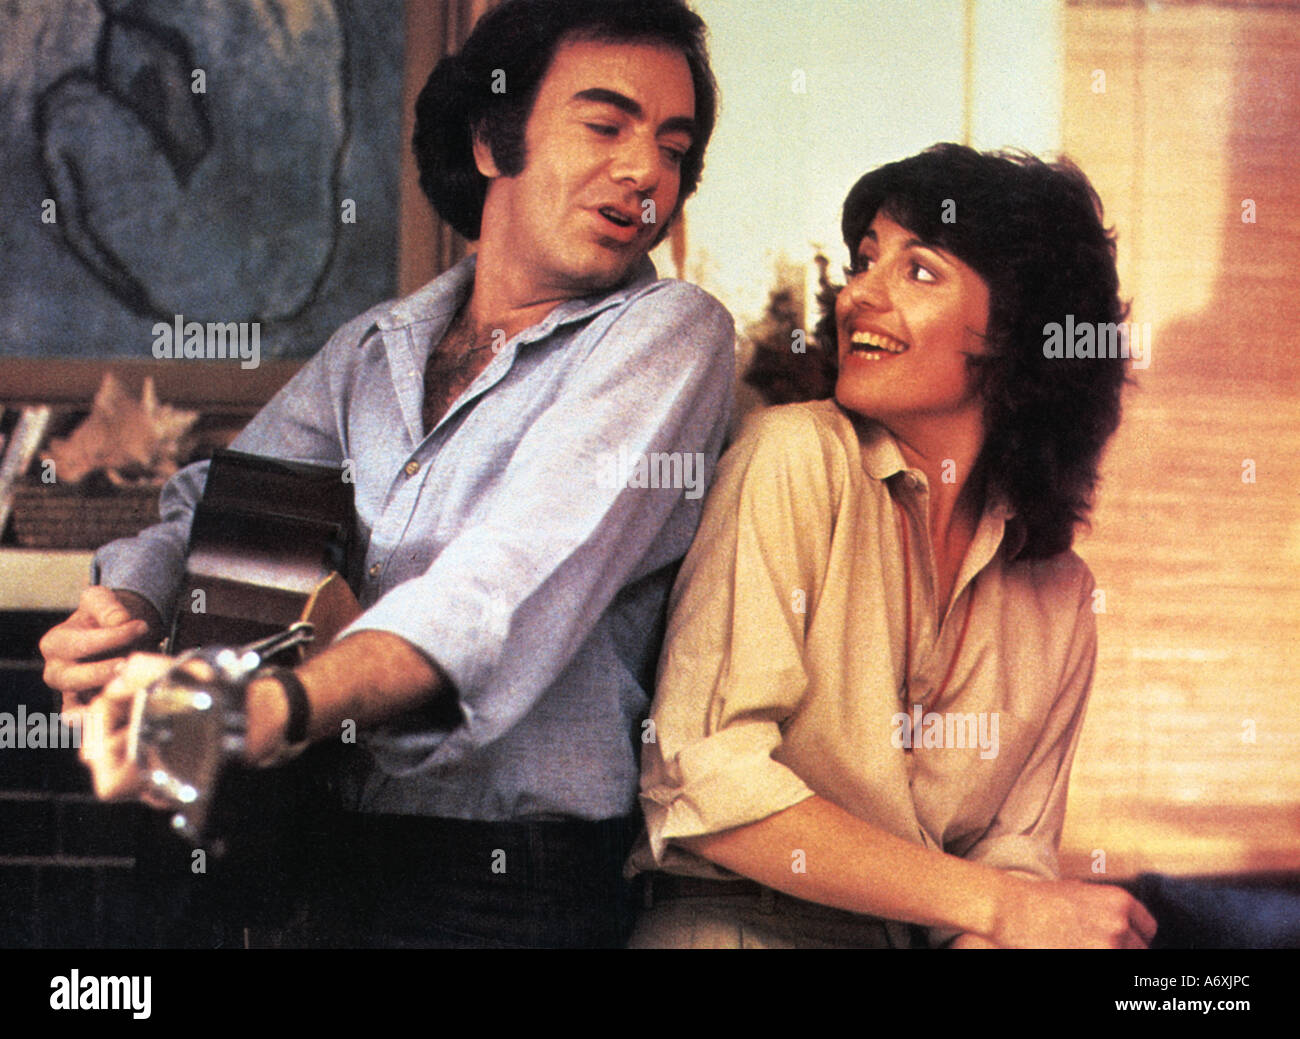 The jazz singer neil diamond and lucie arnaz in the 1980 emi film.